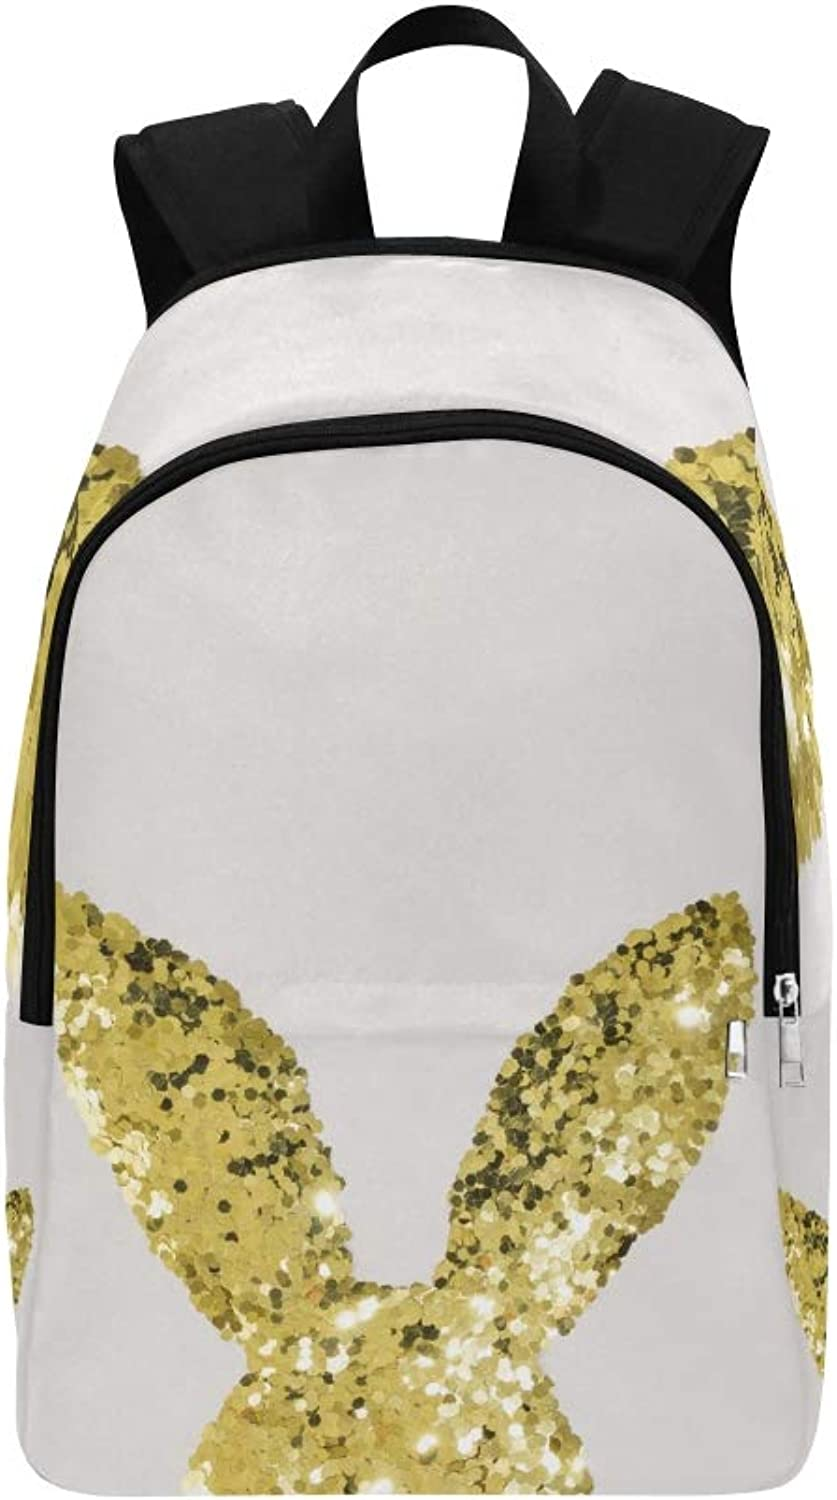 Easter Bunny Rabbit Made gold Glitter Casual Daypack Travel Bag College School Backpack for Mens and Women